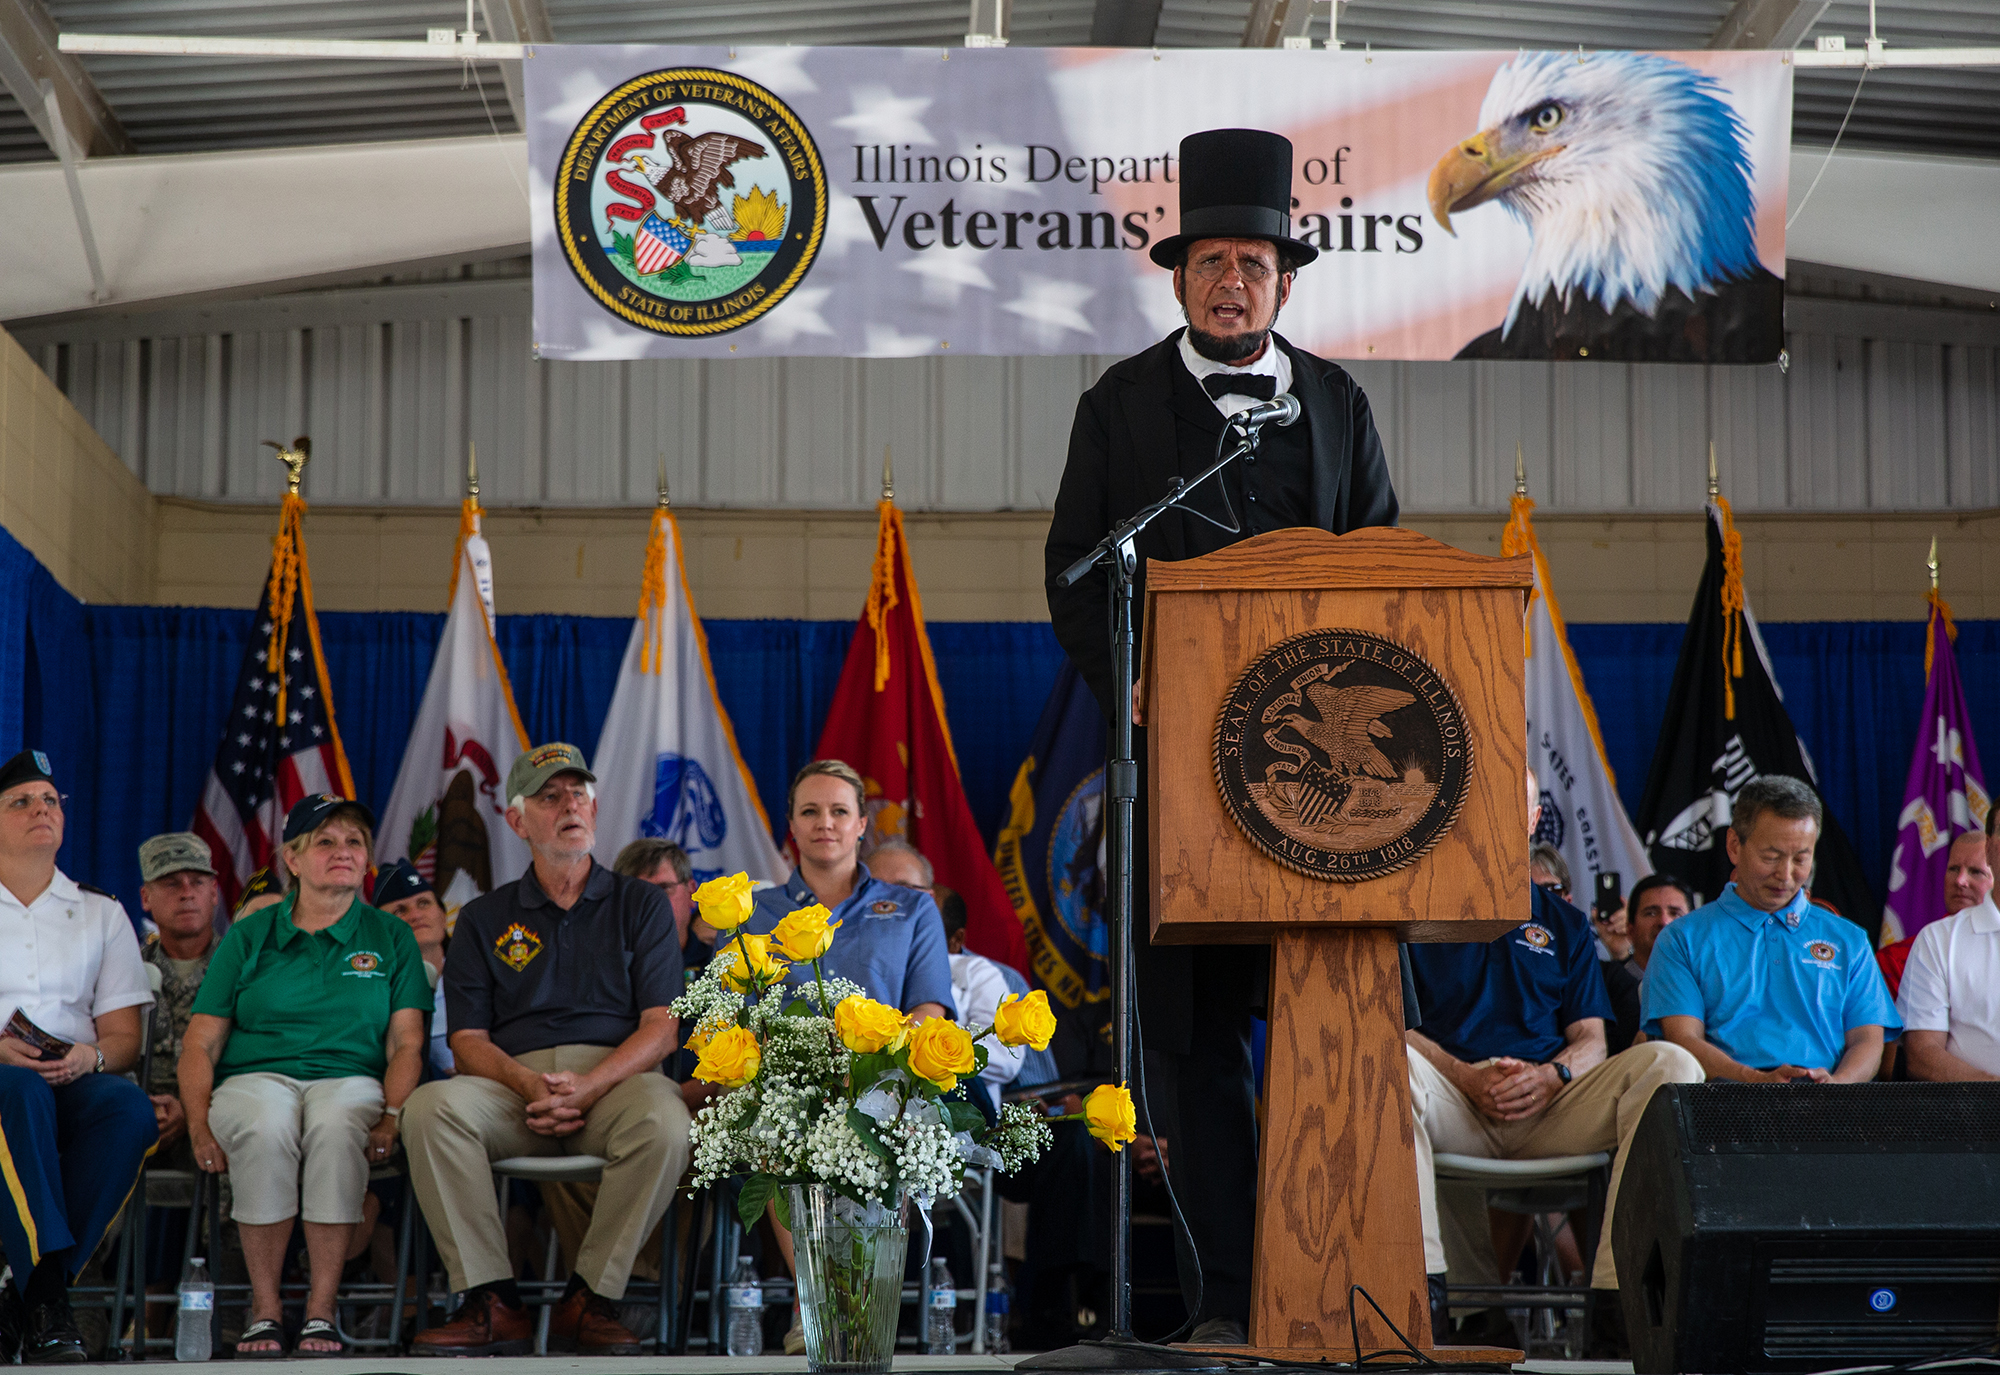 Abraham Lincoln, portrayed by George Buss, gives a narrative of the 200 years of Illinois military history as part of a presentation done by Looking For Lincoln and the Living History Detachment Reenactors during Veterans Day at the Illinois State Fair on the Lincoln Stage at the Illinois State Fairgrounds, Sunday, Aug. 12, 2018, in Springfield, Ill. [Justin L. Fowler/The State Journal-Register]